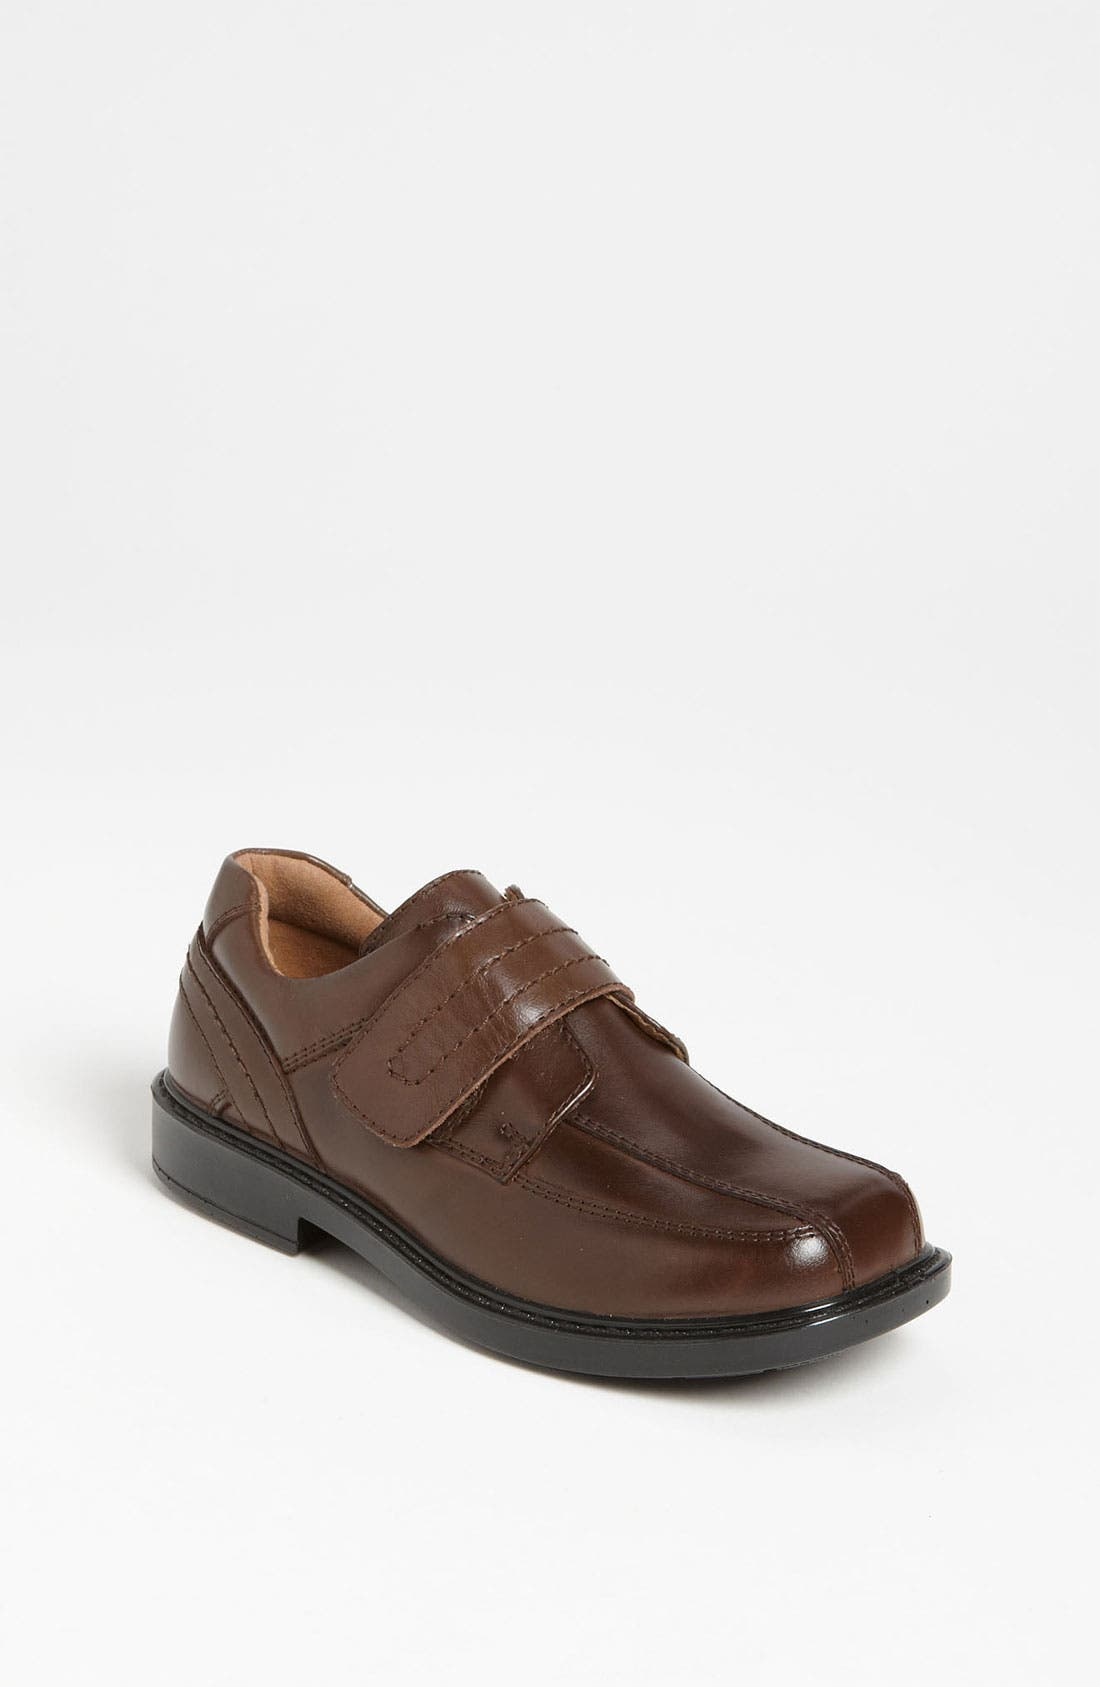 Alternate Image 1 Selected - Hush Puppies® 'Oberlin' Loafer (Toddler, Little Kid & Big Kid)